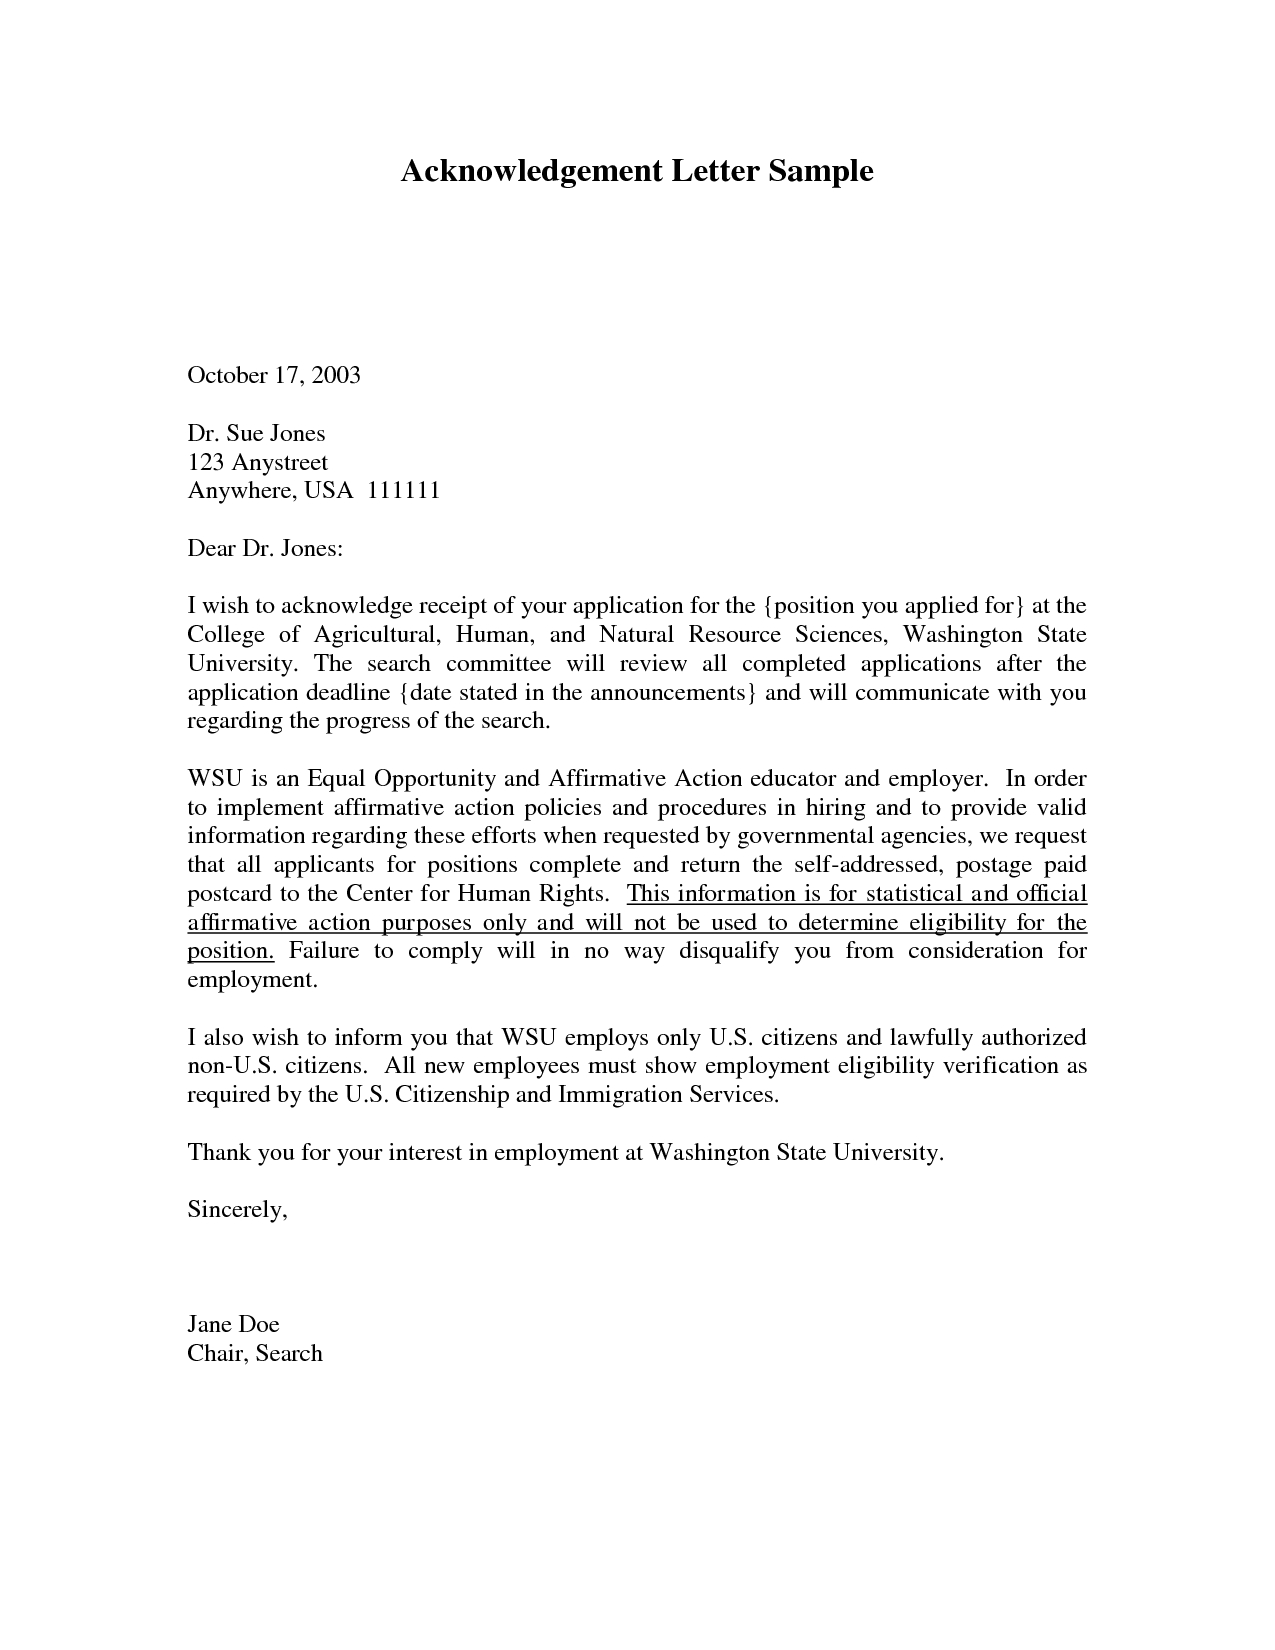 Immigration Reference Letter Template - Referenceetter for Immigration Marriage Re Mendation Friend